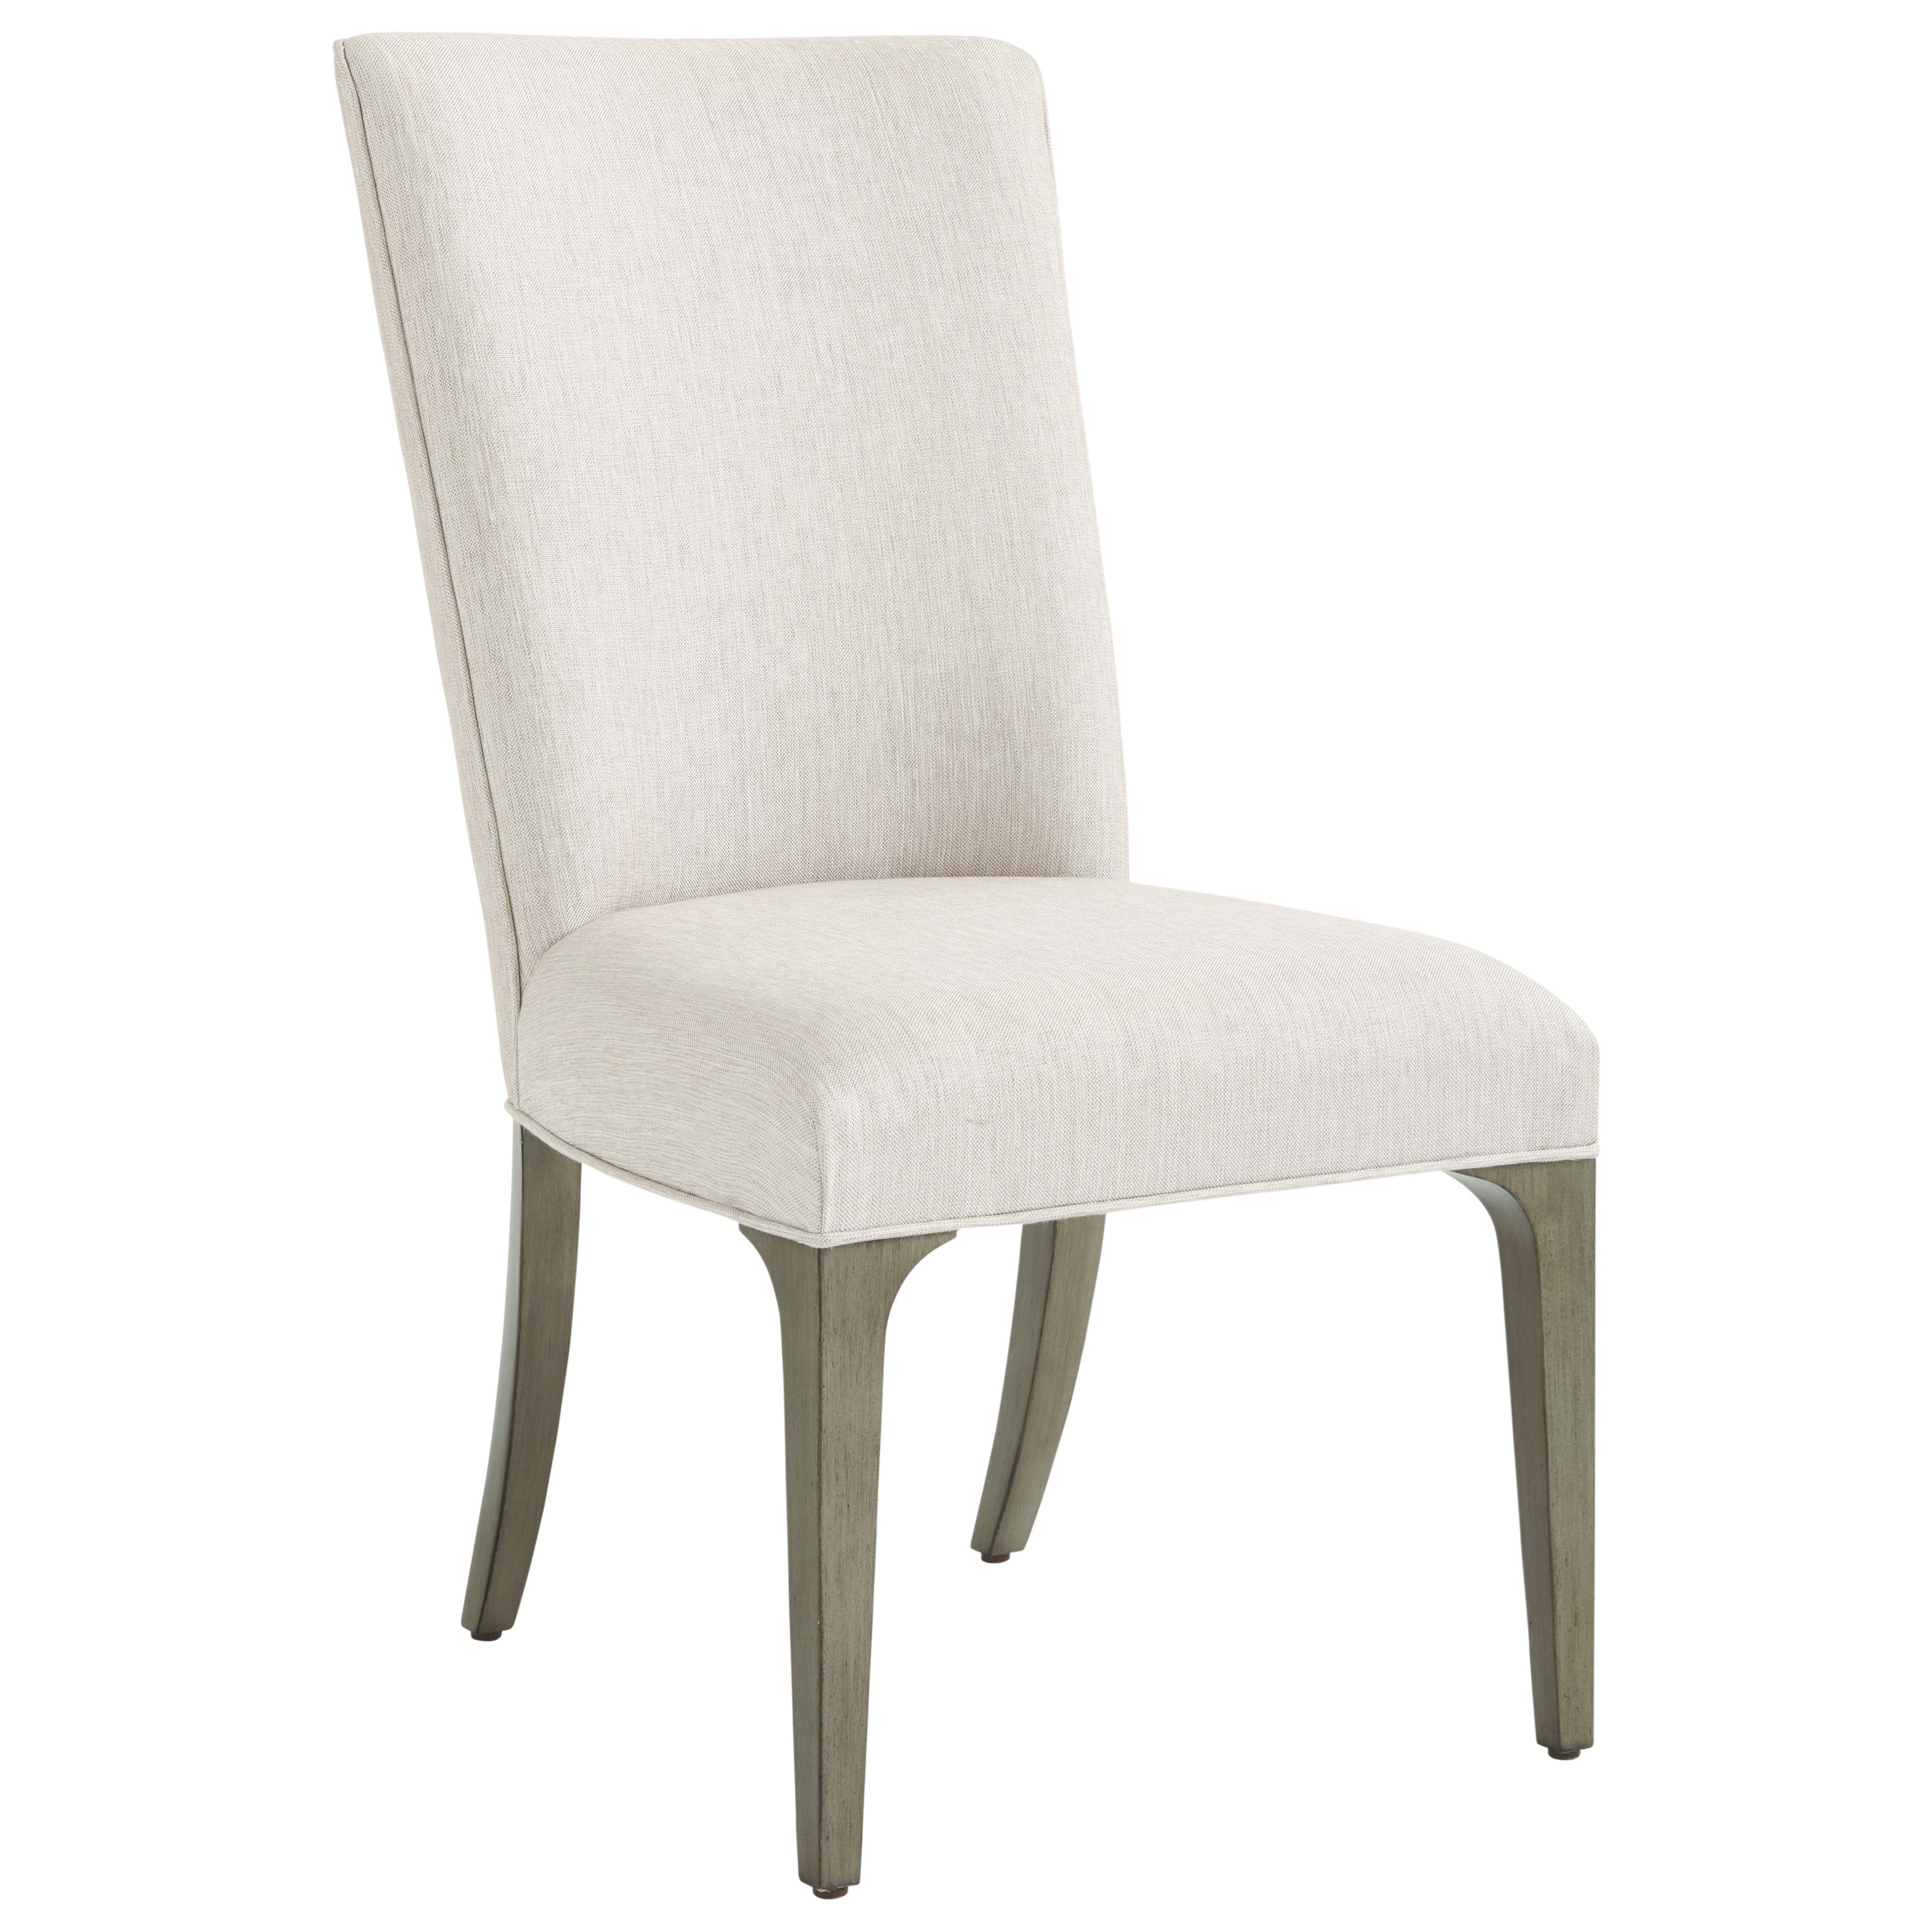 Ariana Bellamy Upholstered Side Chair (married fab) by Lexington at Baer's Furniture